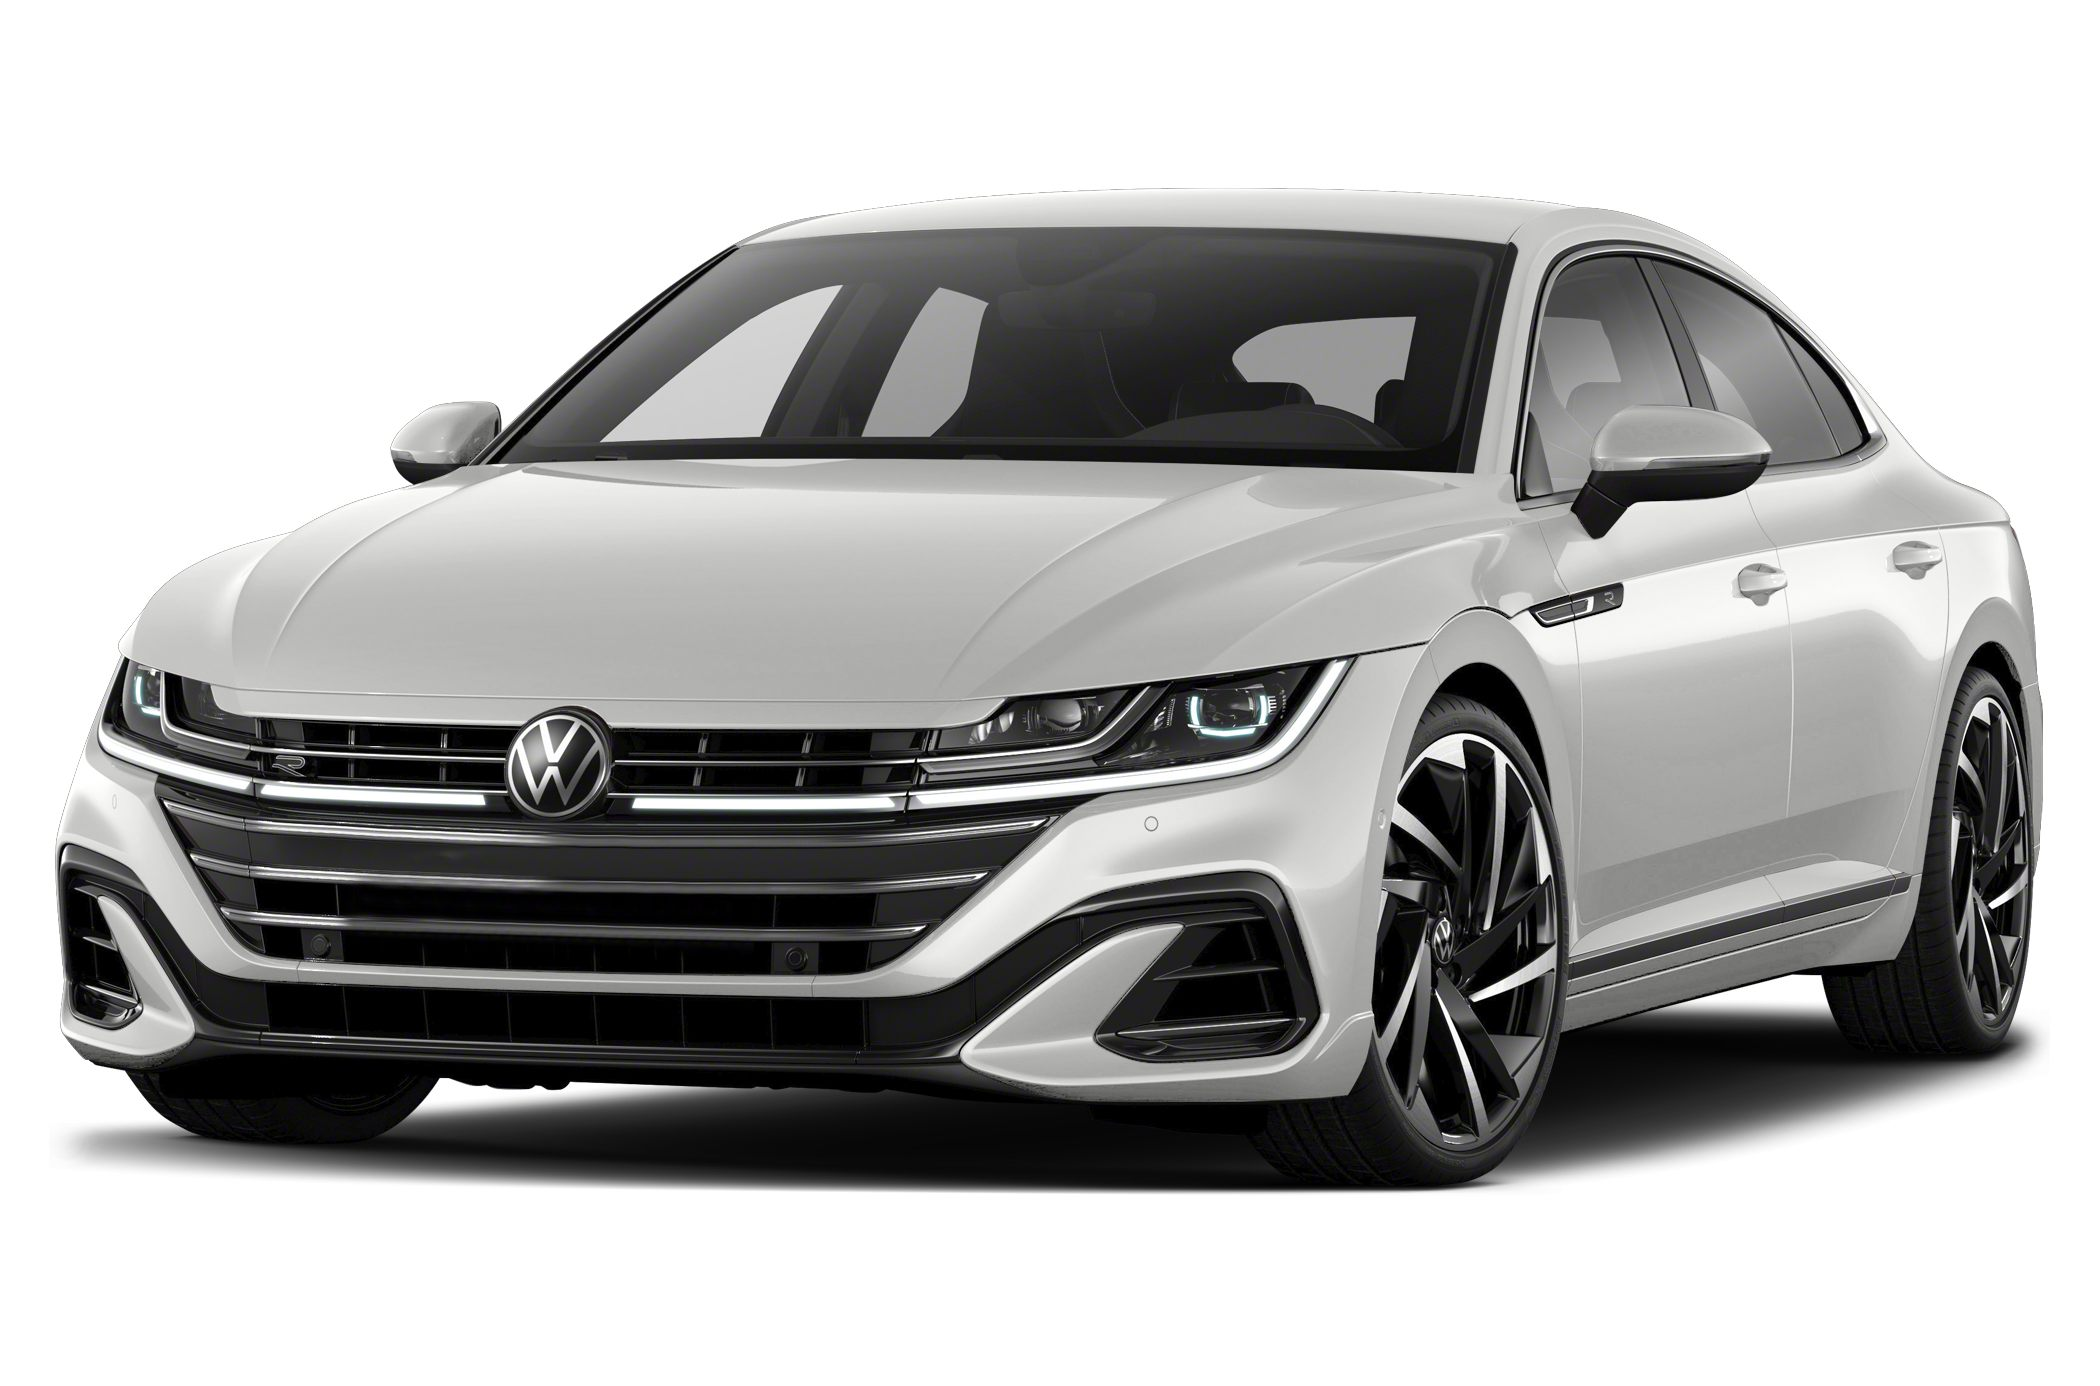 2021 Volkswagen Arteon 2 0t Sel R Line 4dr All Wheel Drive 4motion Sedan Specs And Prices